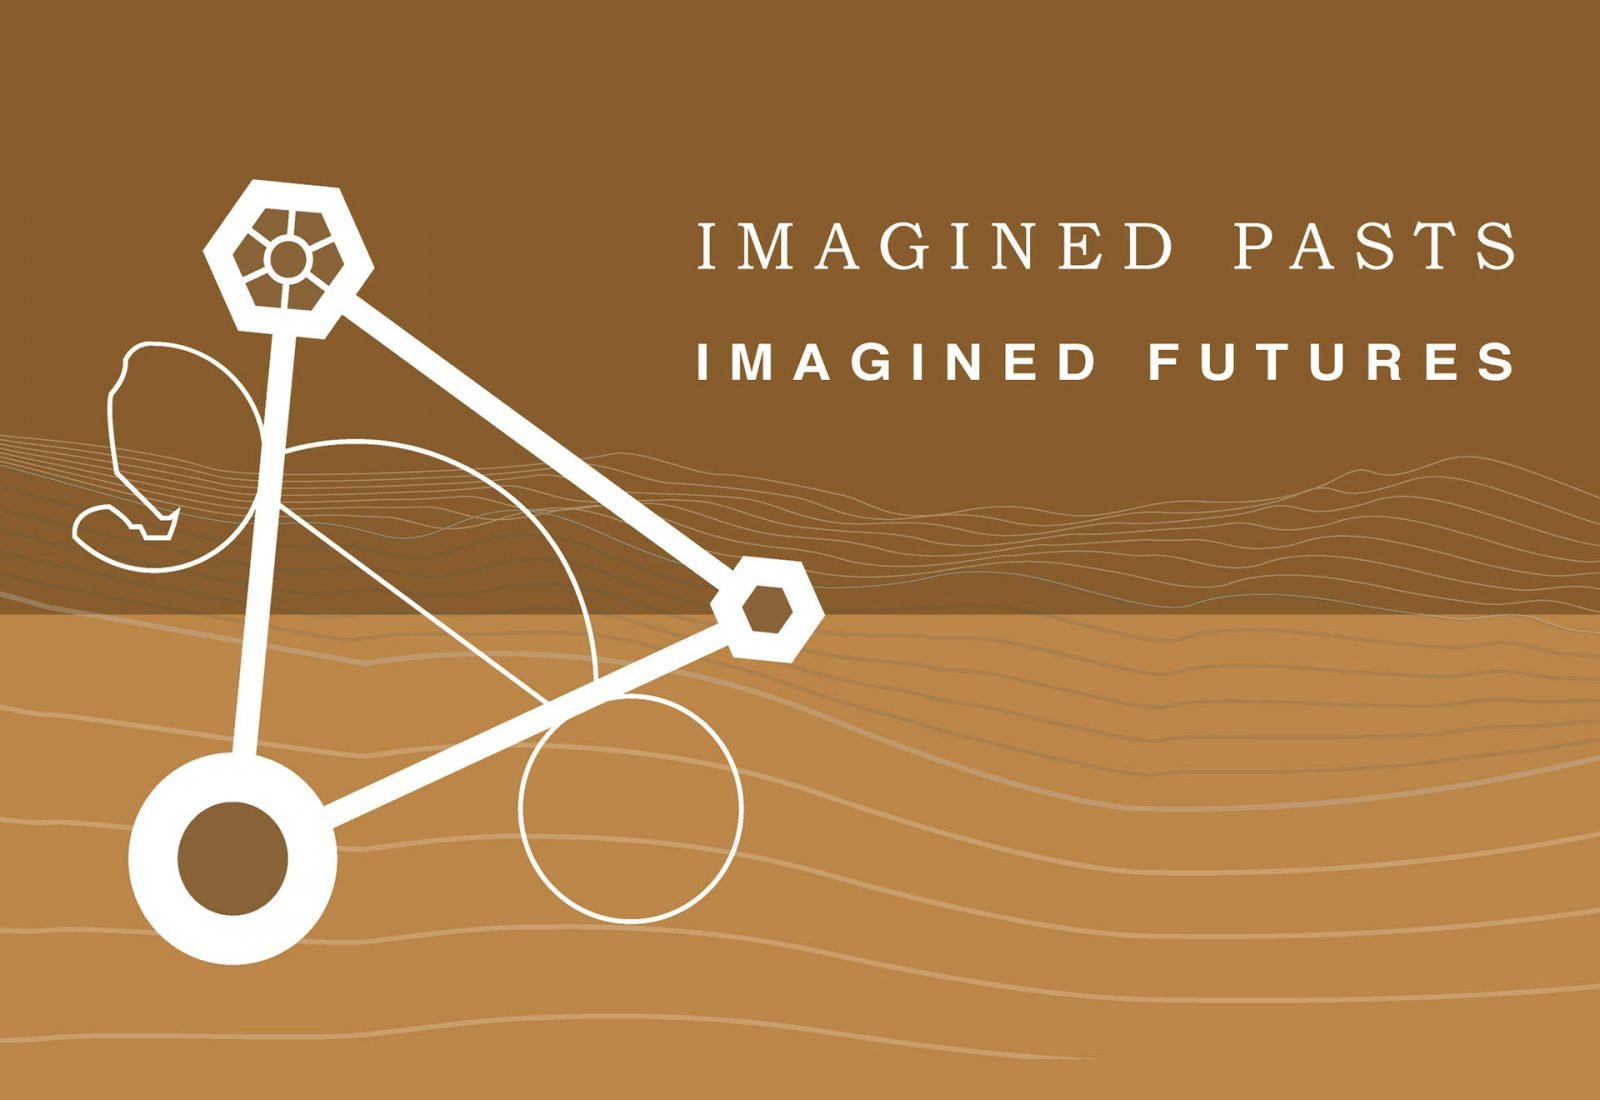 Logo design and branding for ICOMOS Australia - Imagined Pasts Imagined Futures